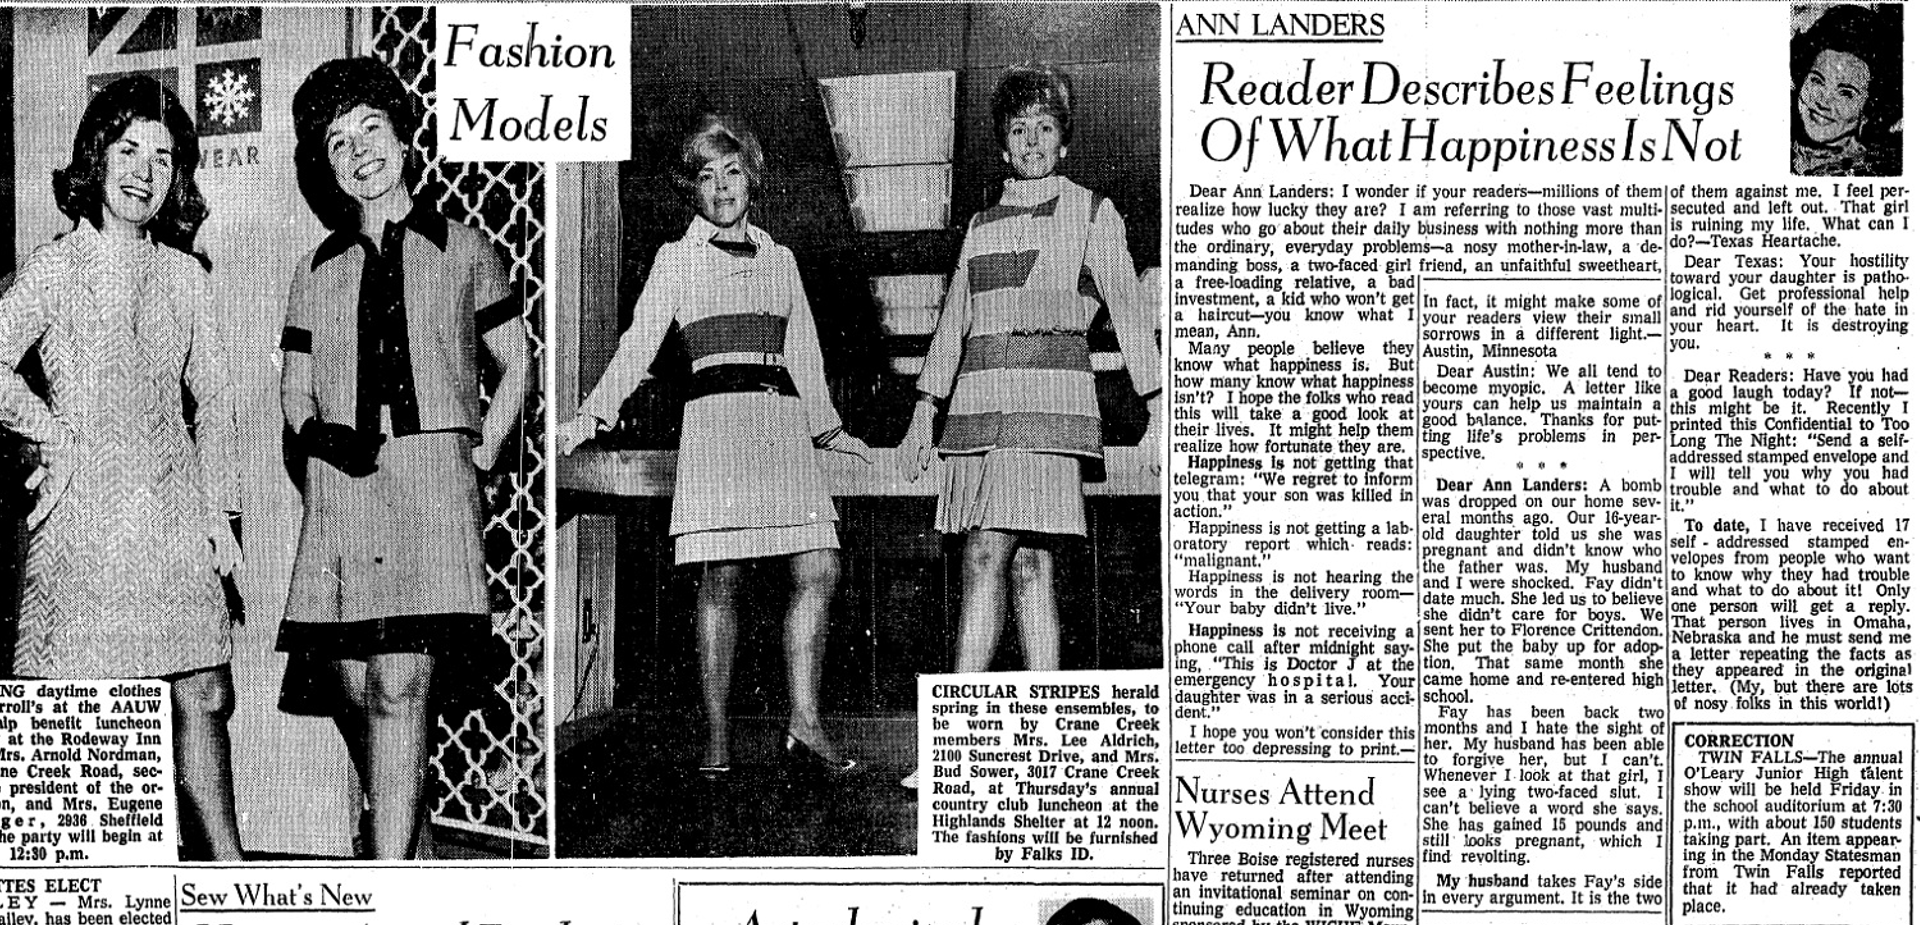 A mom's shocking letter to Ann Landers filled with slut shaming and fat shaming of her pregnant daughter, printed in the  Idaho Statesman,  March 17, 1970